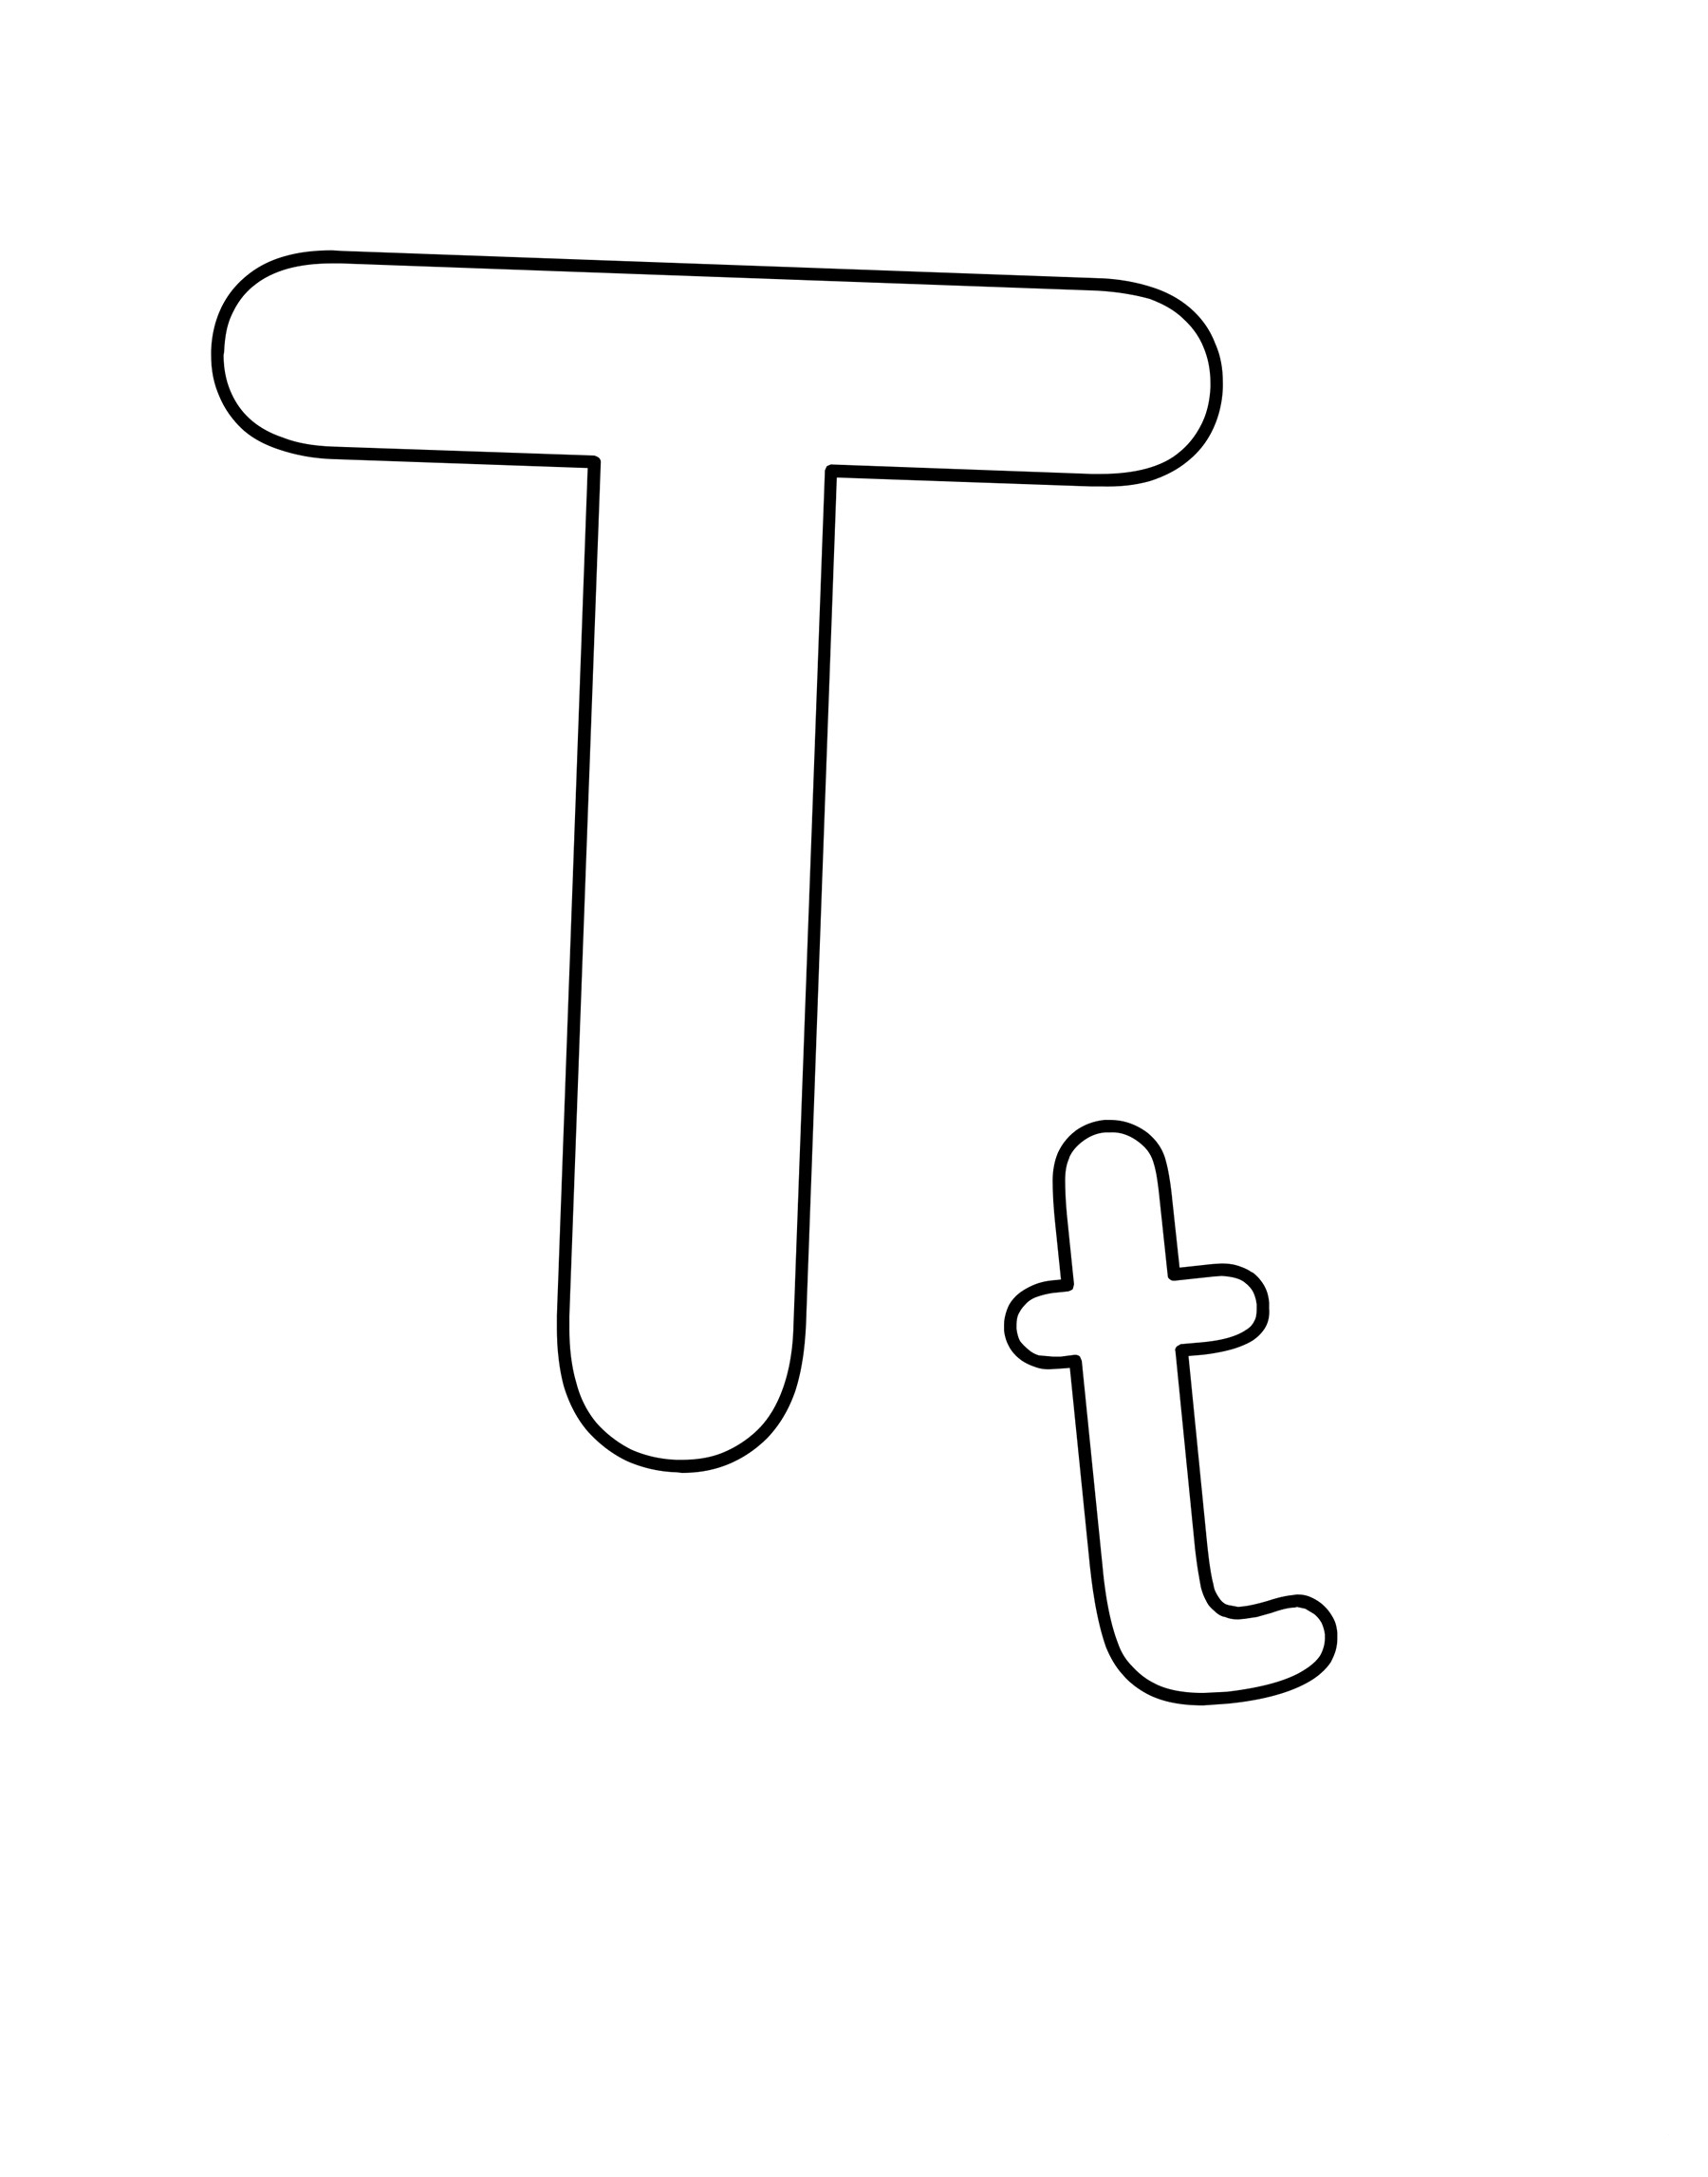 letter t coloring page animal alphabet letter t coloring turtle coloring coloring t page letter